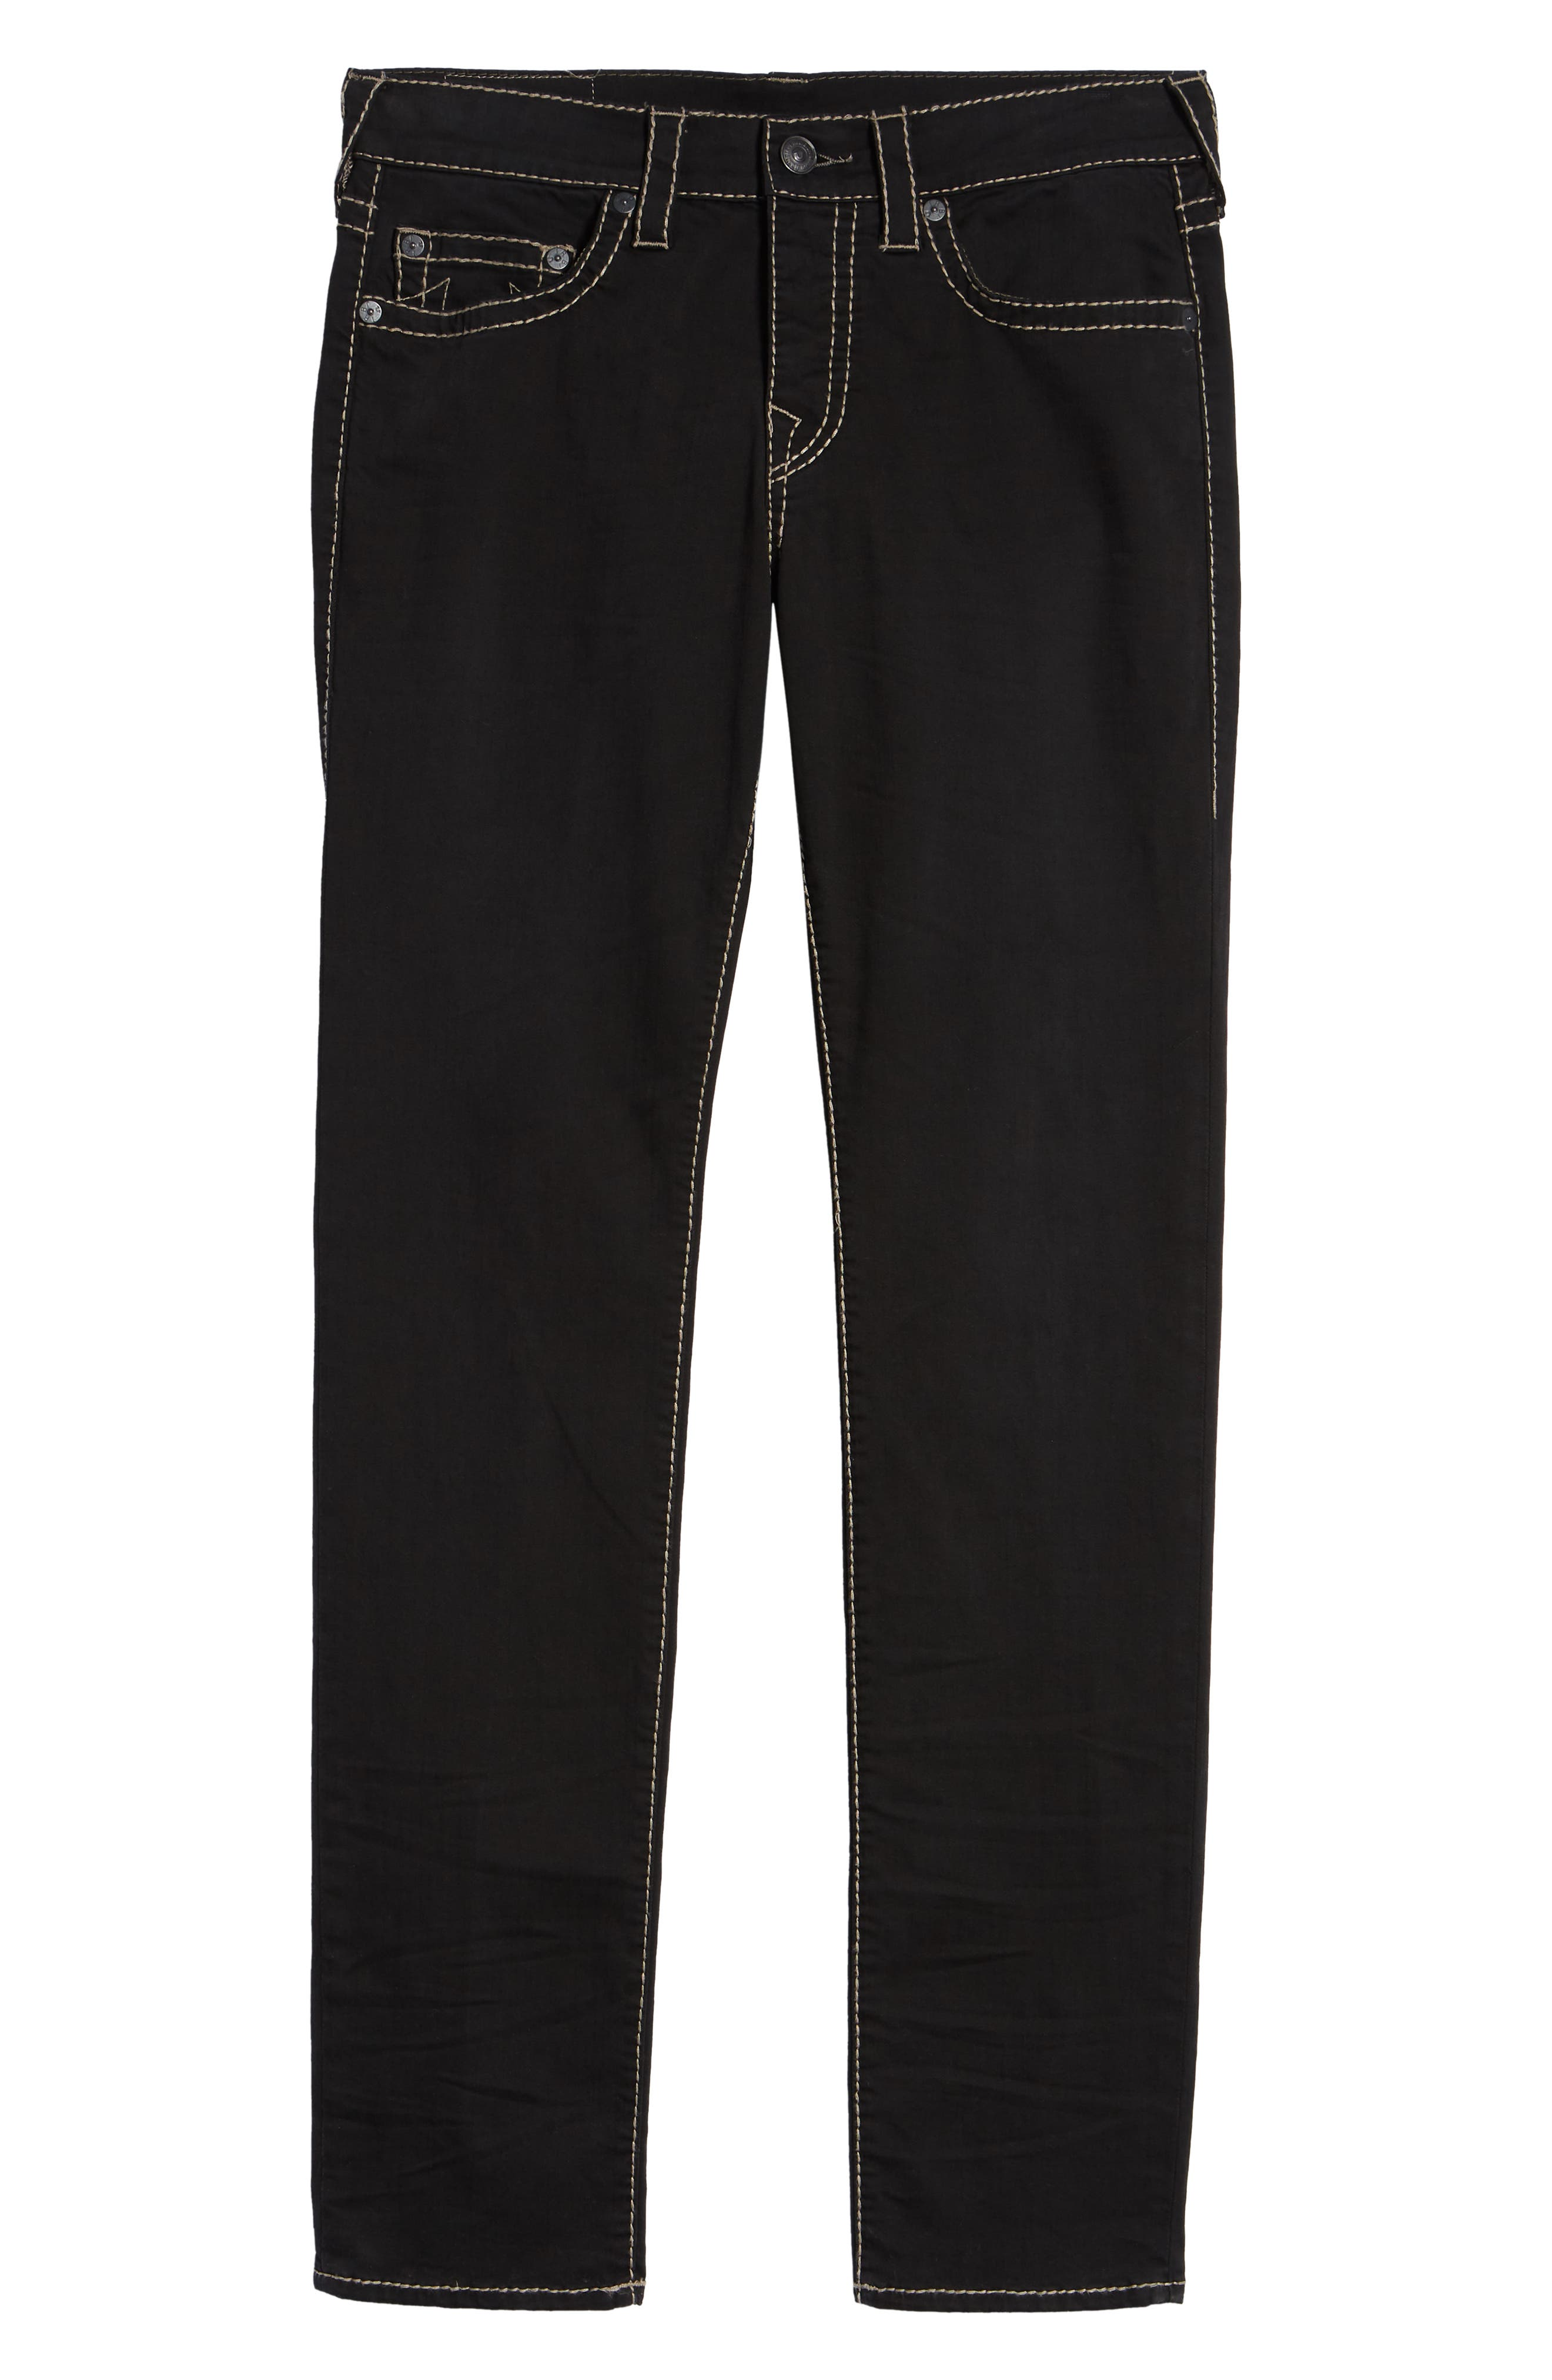 Rocco Skinny Fit Jeans,                             Alternate thumbnail 6, color,                             BLACK